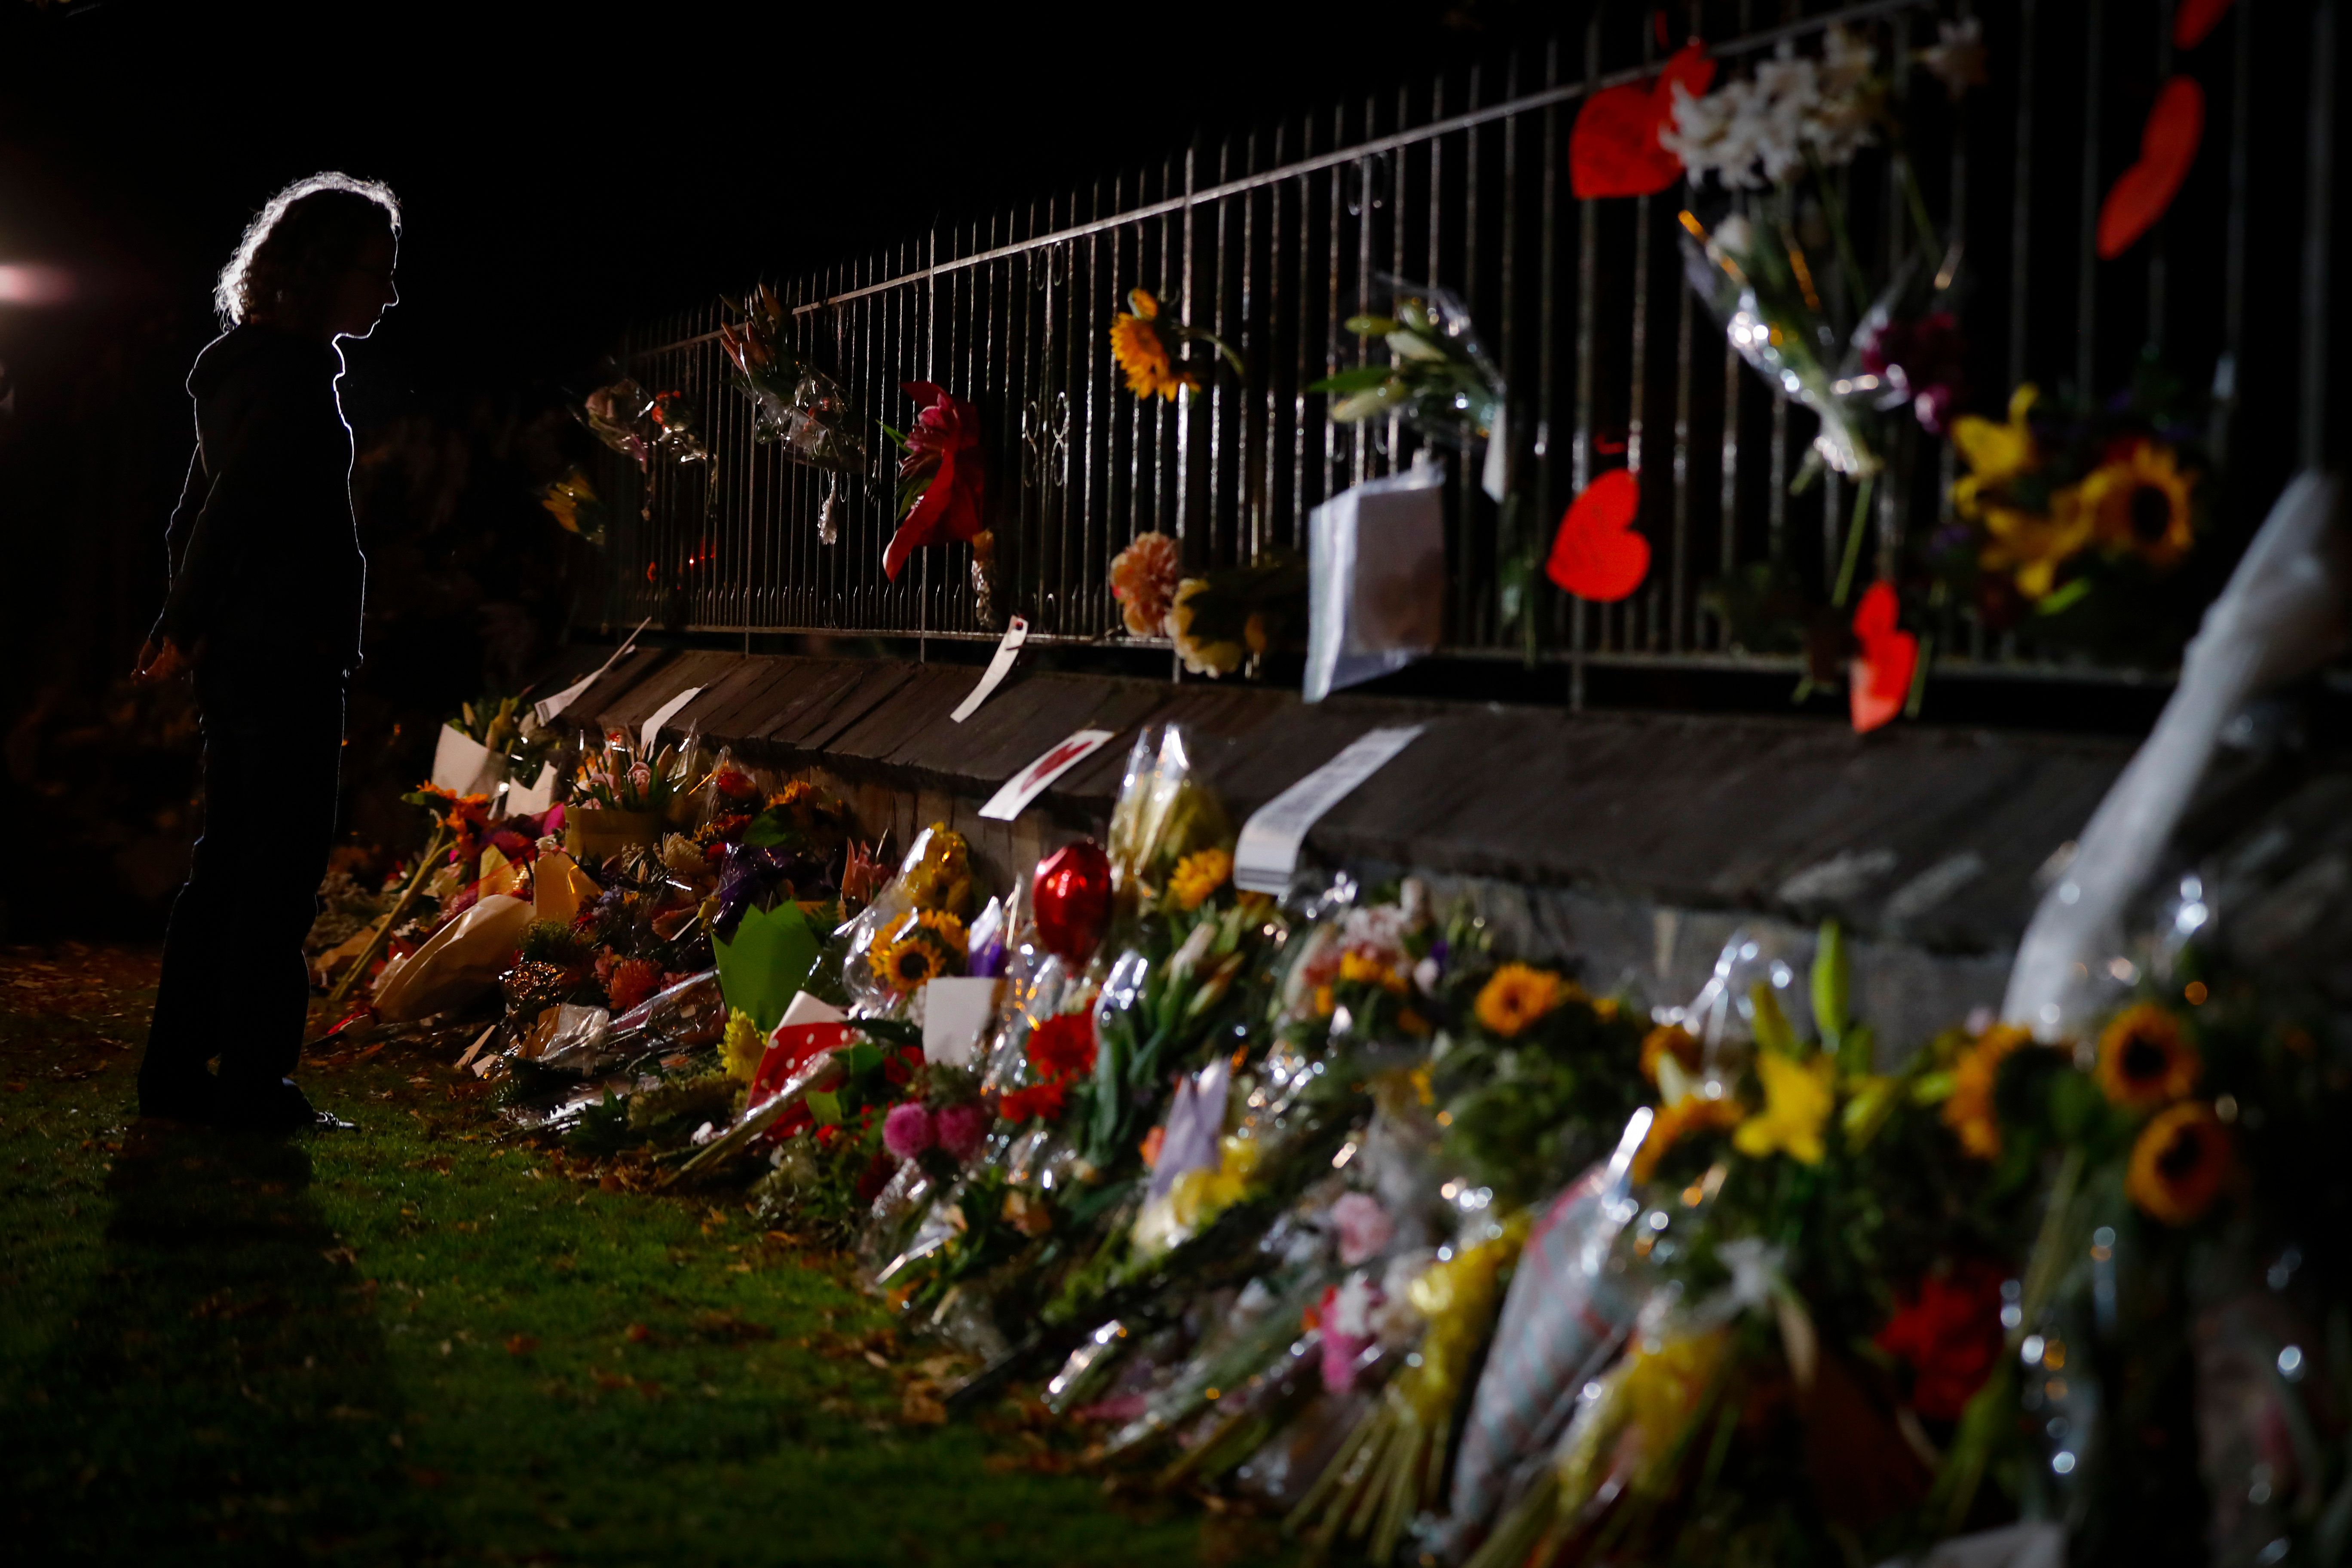 Mourners pay their respects at a makeshift memorial near the Masjid Al Noor mosque in Christchurch, New Zealand, Saturday, March 16, 2019. New Zealand's stricken residents reached out to Muslims in their neighborhoods and around the country on Saturday, in a fierce determination to show kindness to a community in pain as a 28-year-old white supremacist stood silently before a judge, accused in mass shootings at two mosques that left dozens of people dead. (AP Photo/Vincent Thian)